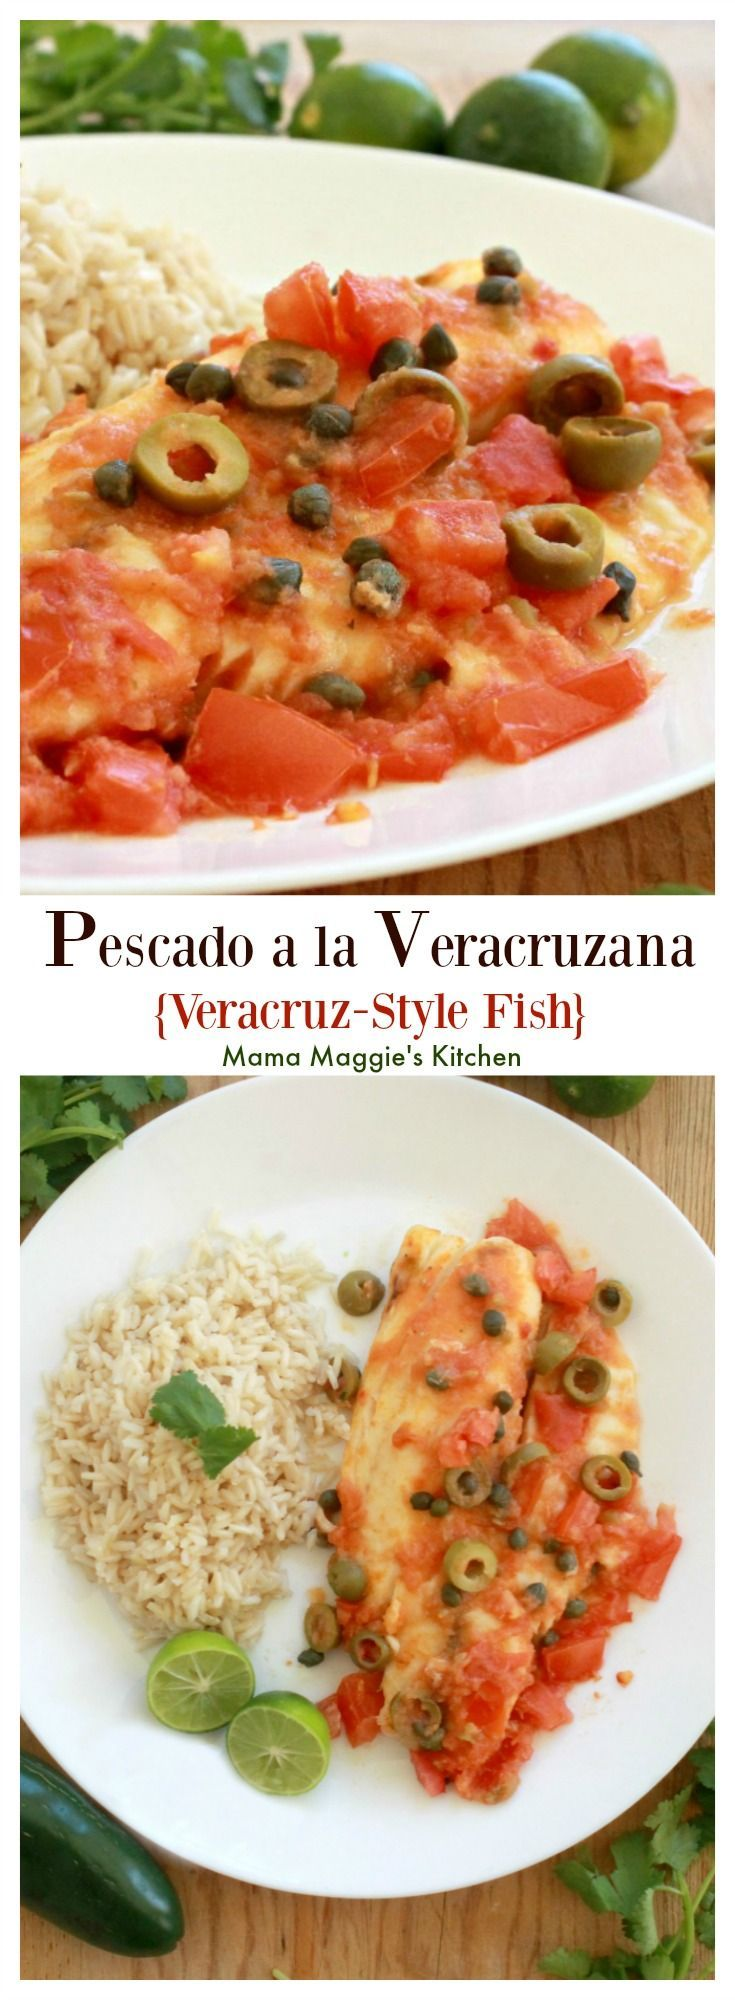 Pescado a la Veracruzana, or Veracruz-Style Fish, is a savory dish that will blow your tastebuds away. It's not very spicy with delicious bites of olive and briny capers. Enjoy! By Mama Maggie's Kitchen sponsored